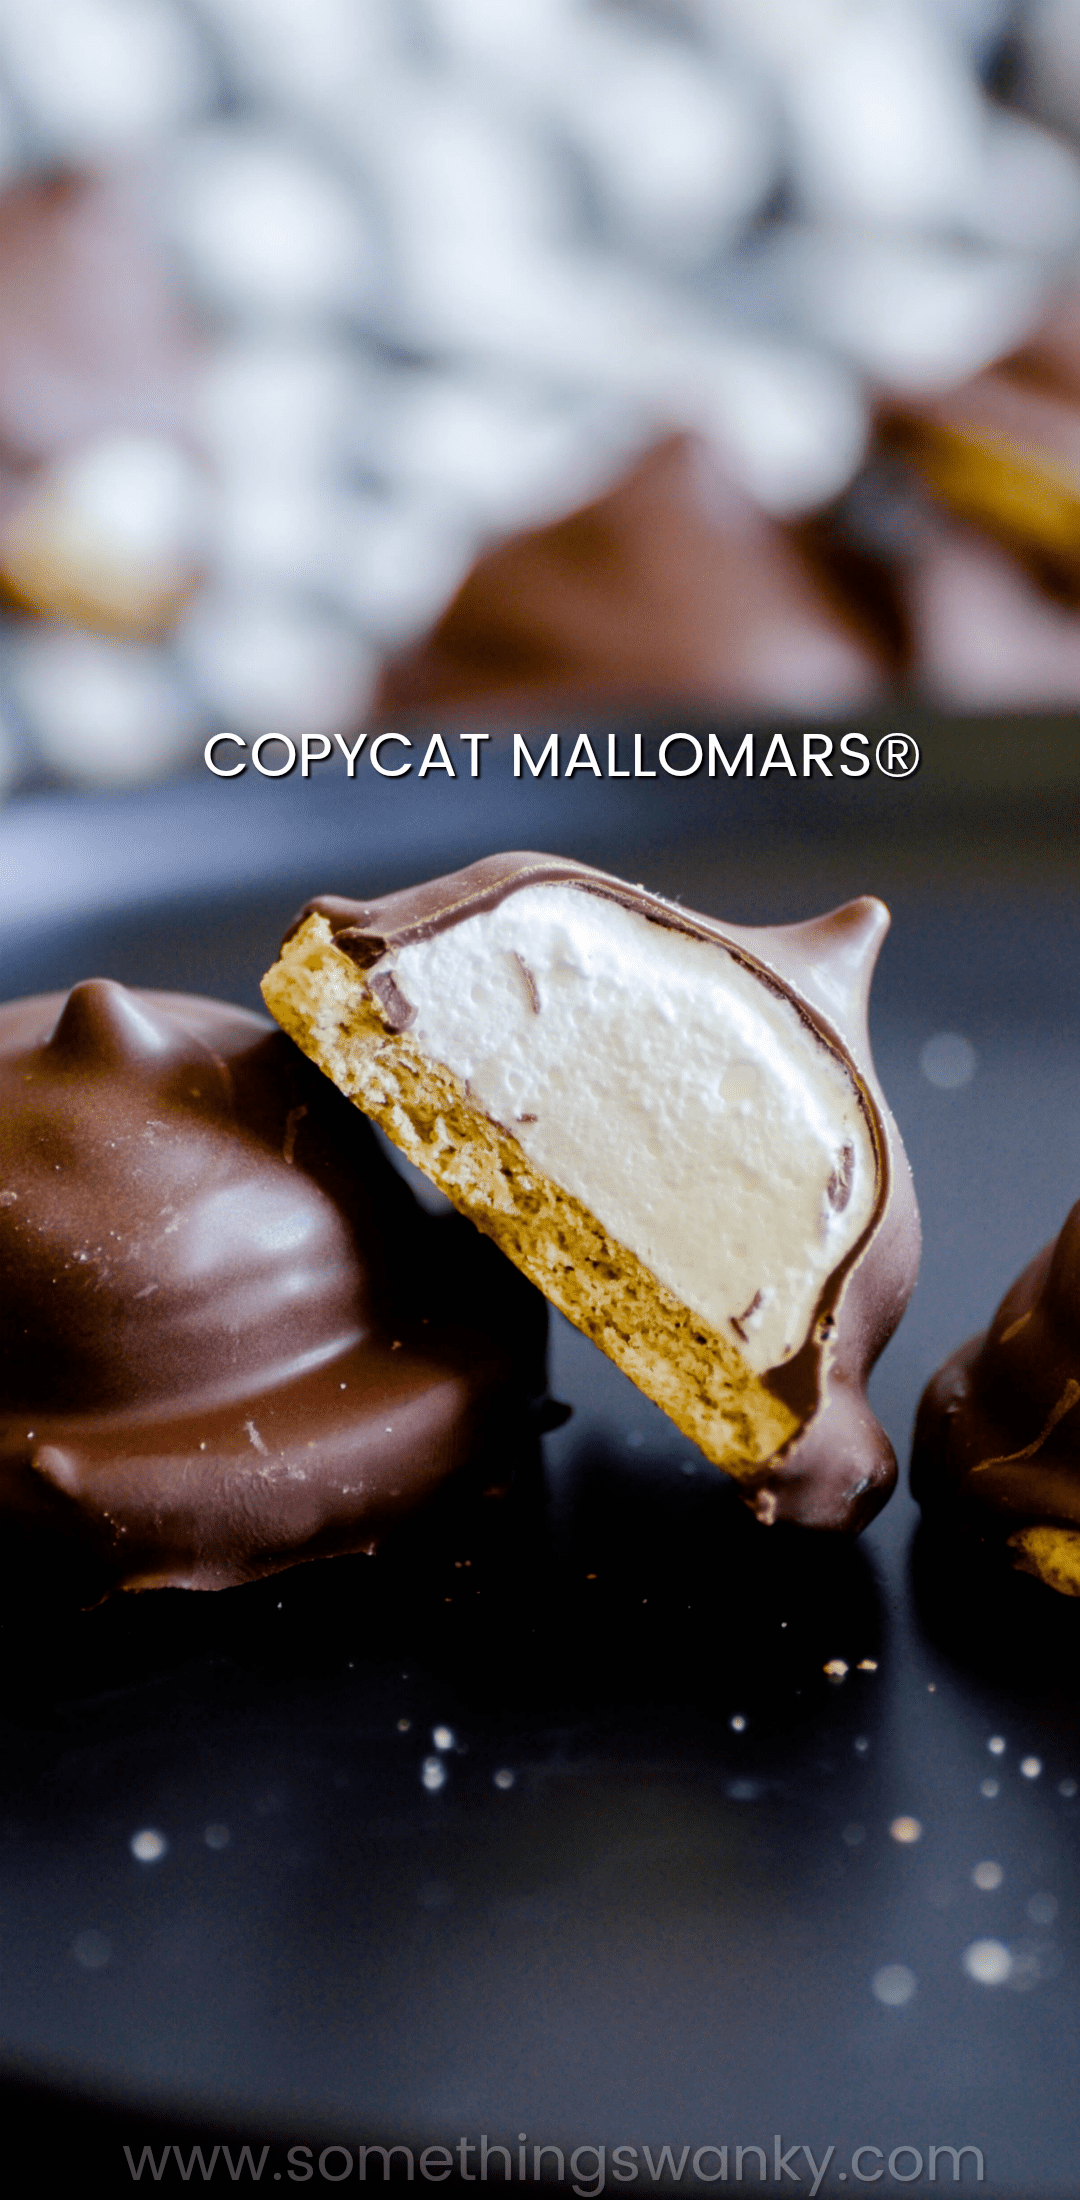 These Copycat Mallomars became an immediate favorite in our house! Soft, homemade marshmallow on top of a graham cracker and covered in chocolate